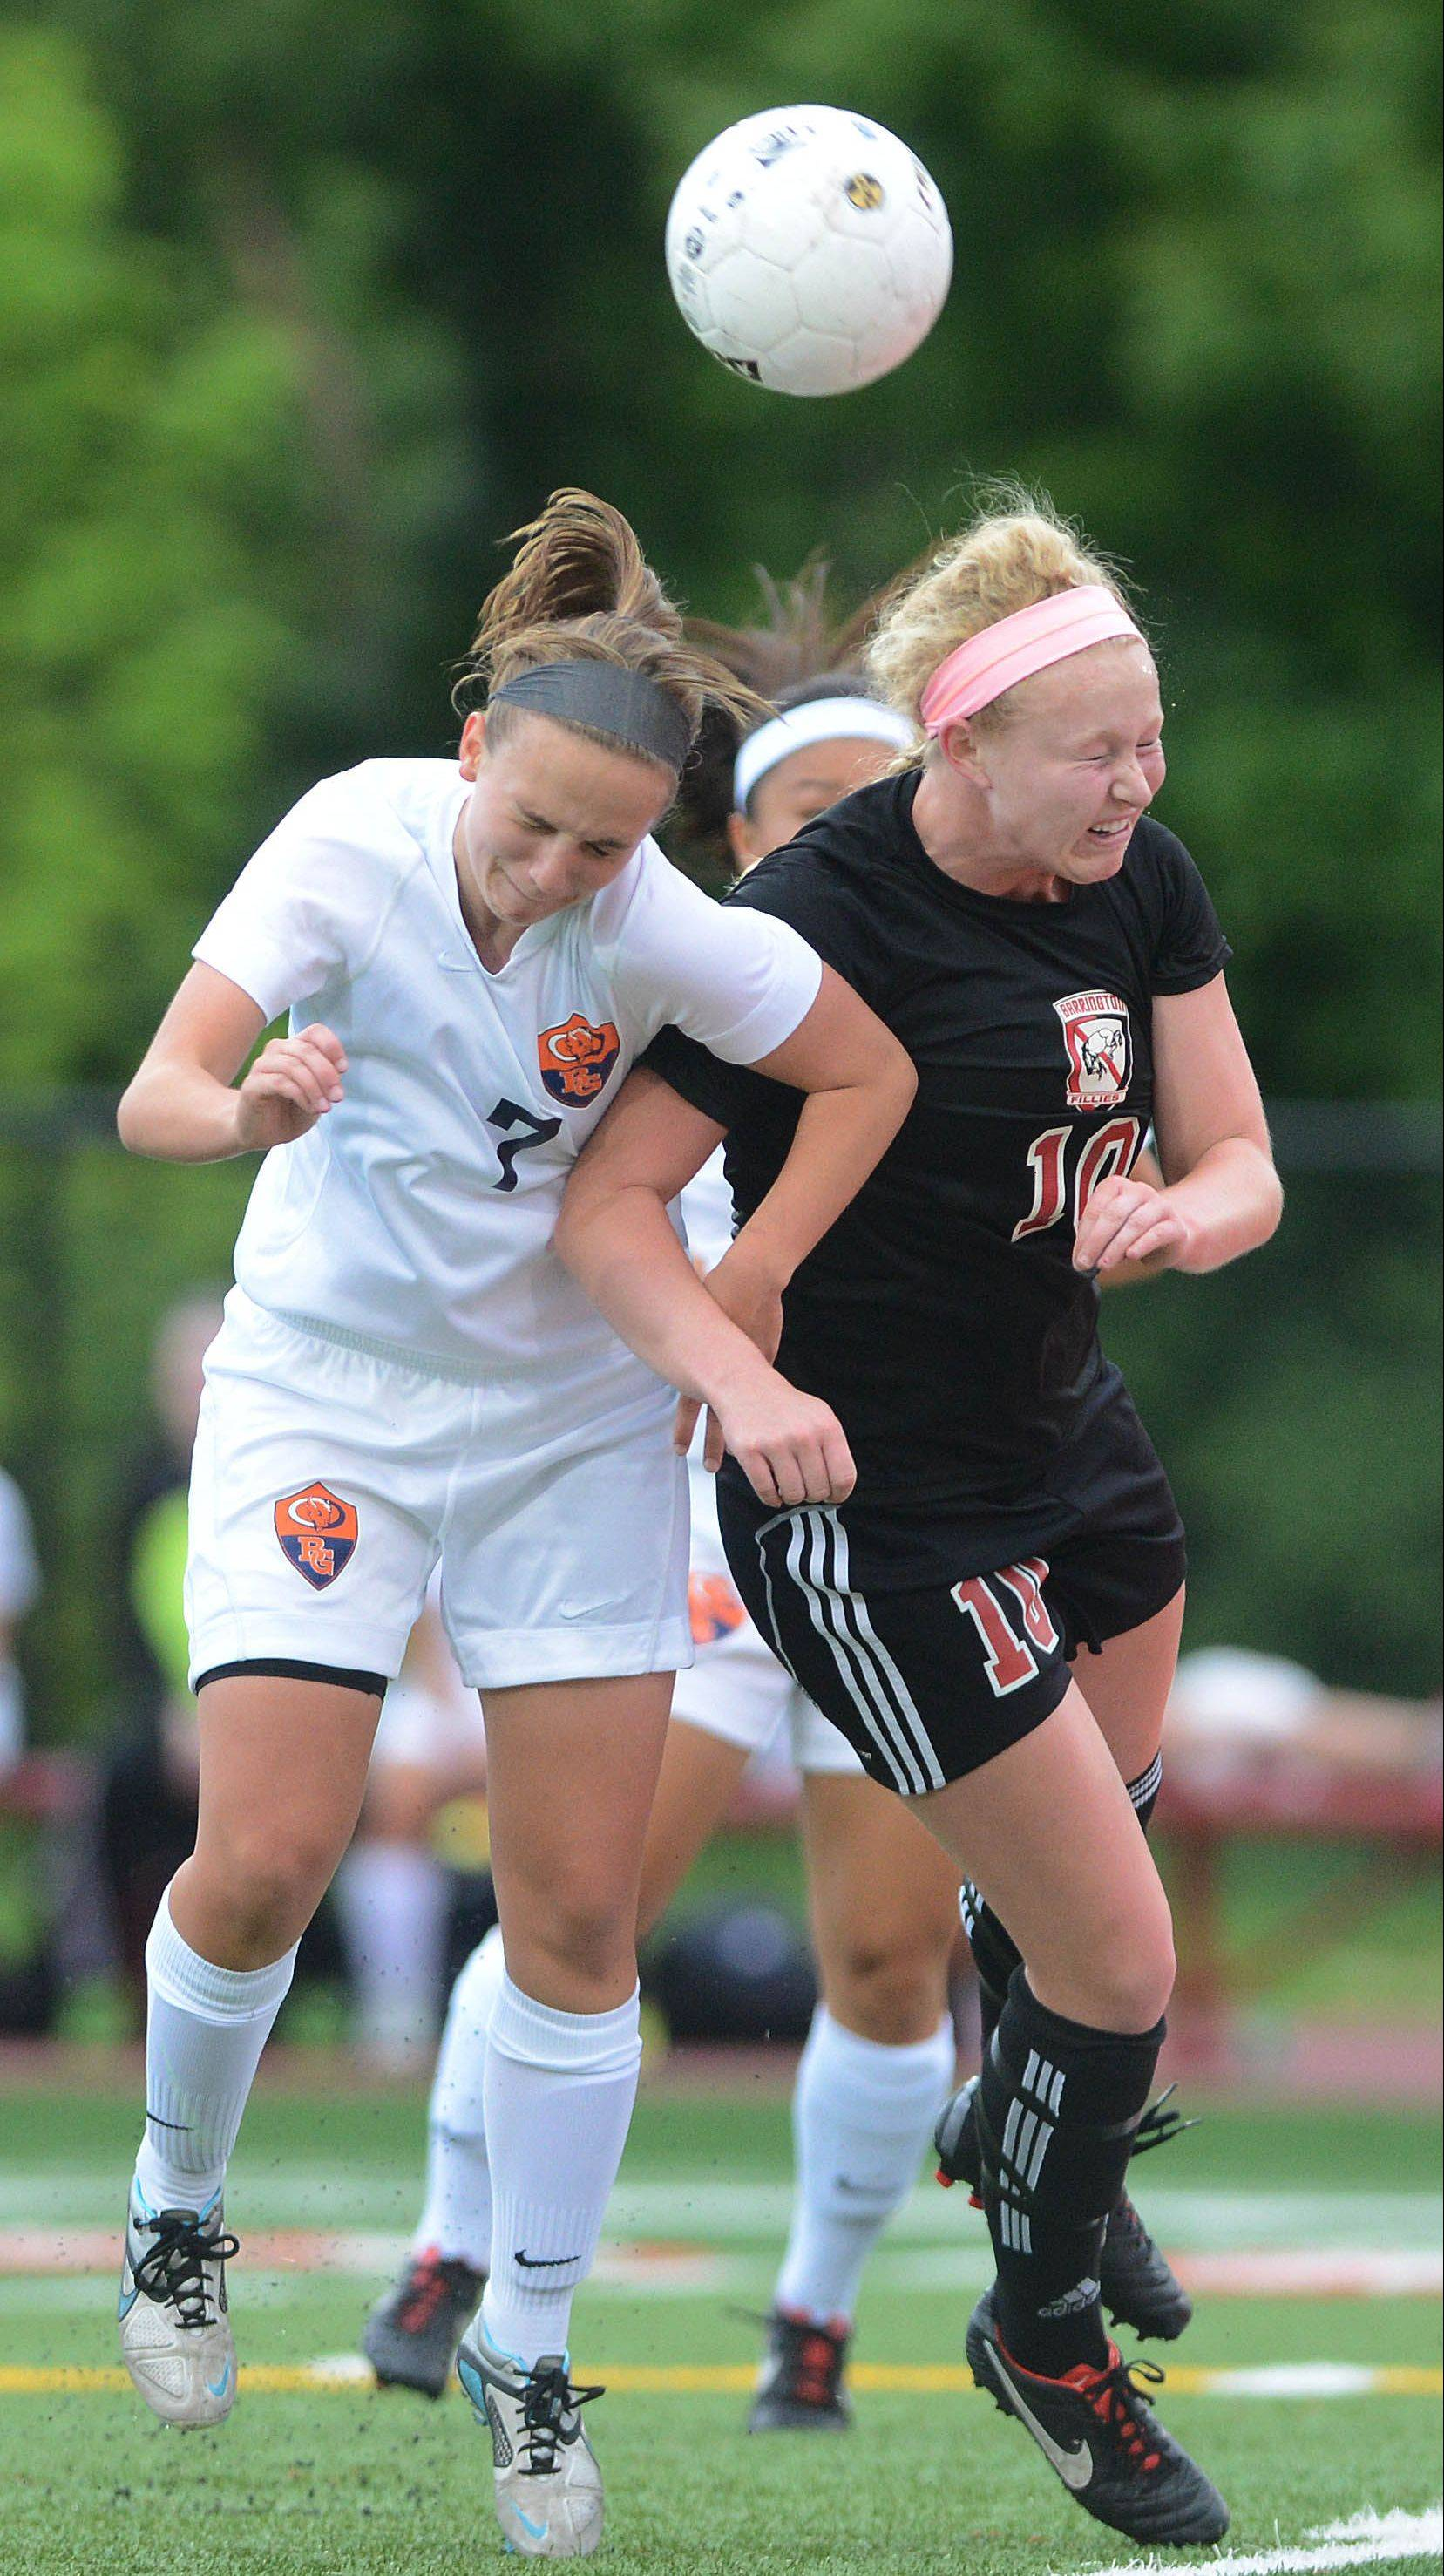 Barrington's Molly Pfeiffer, at right battling all-area selection Jessica Kovach of Buffalo Grove in last weekend's Class 3A third-place game, captains the Daily Herald's Northwest girls soccer all-area team this spring.